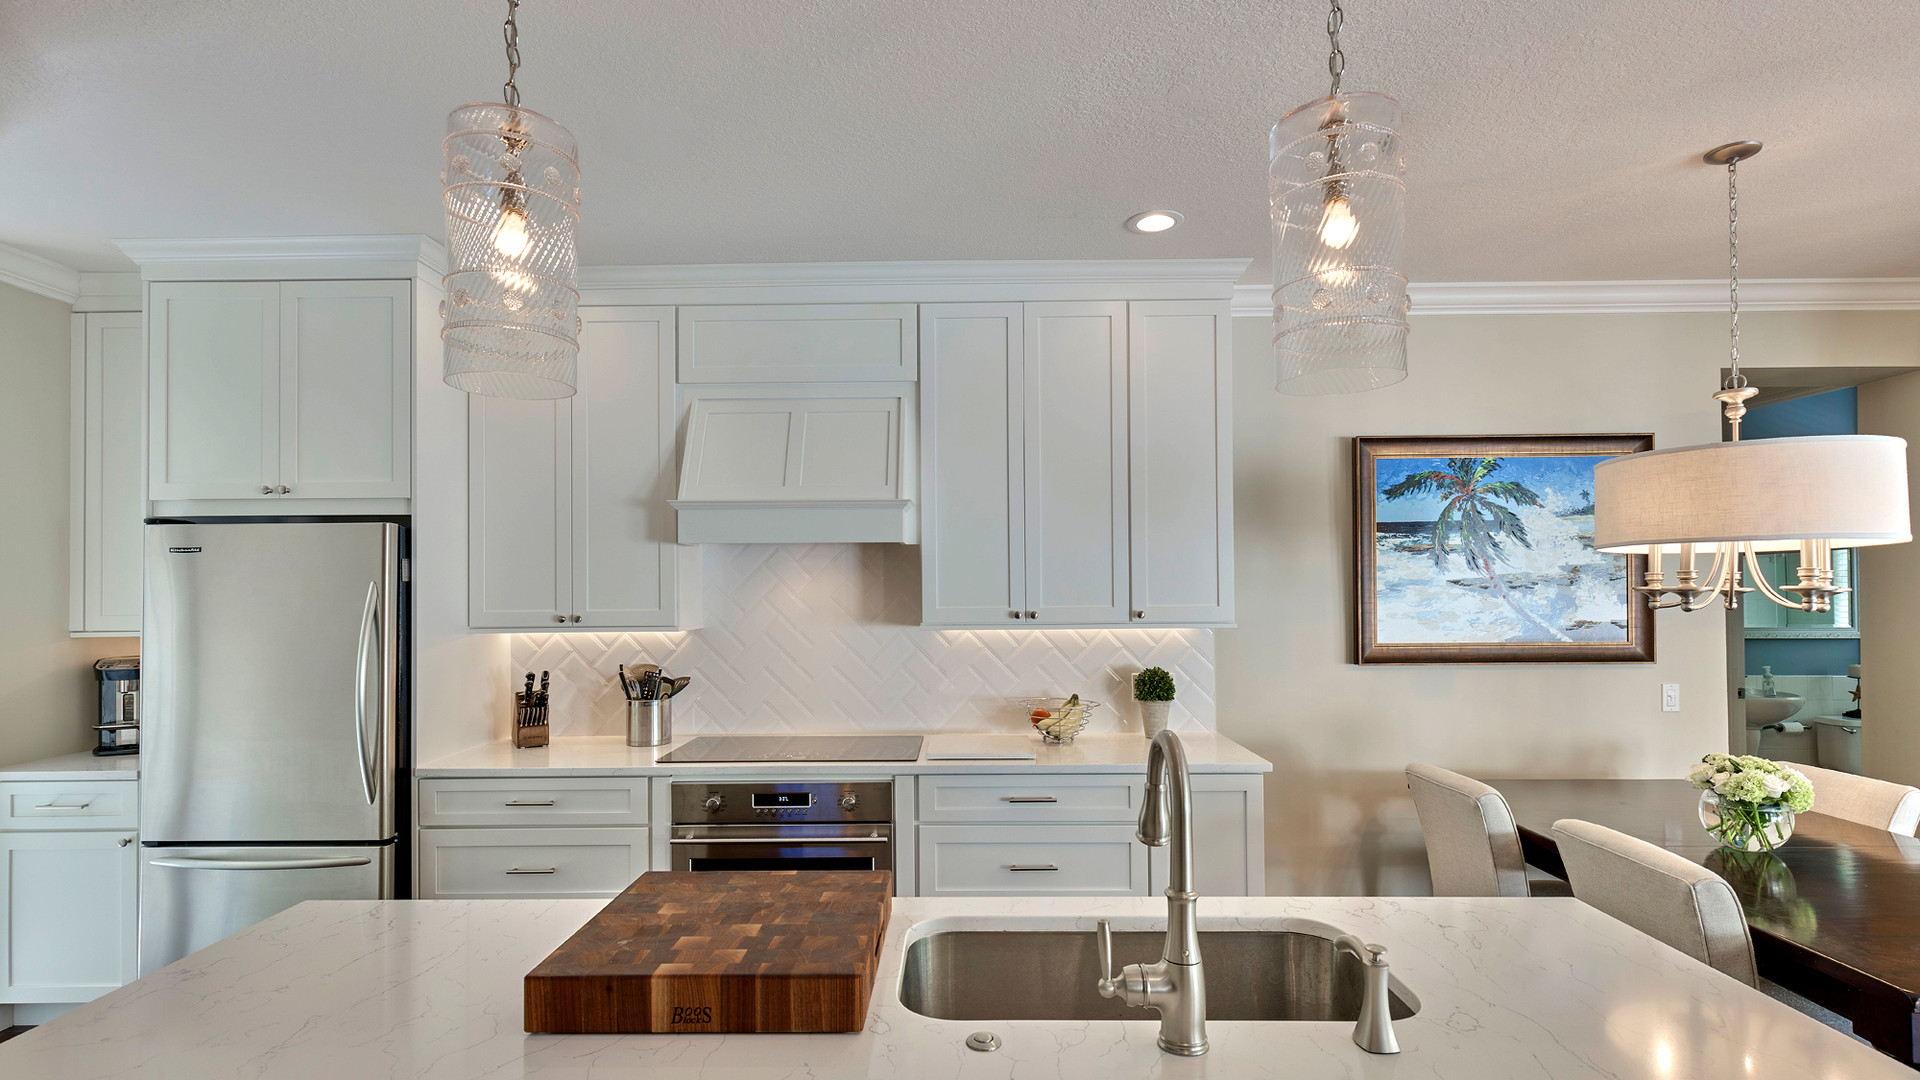 136 Sweet Bay Cr kitchen 3.jpg